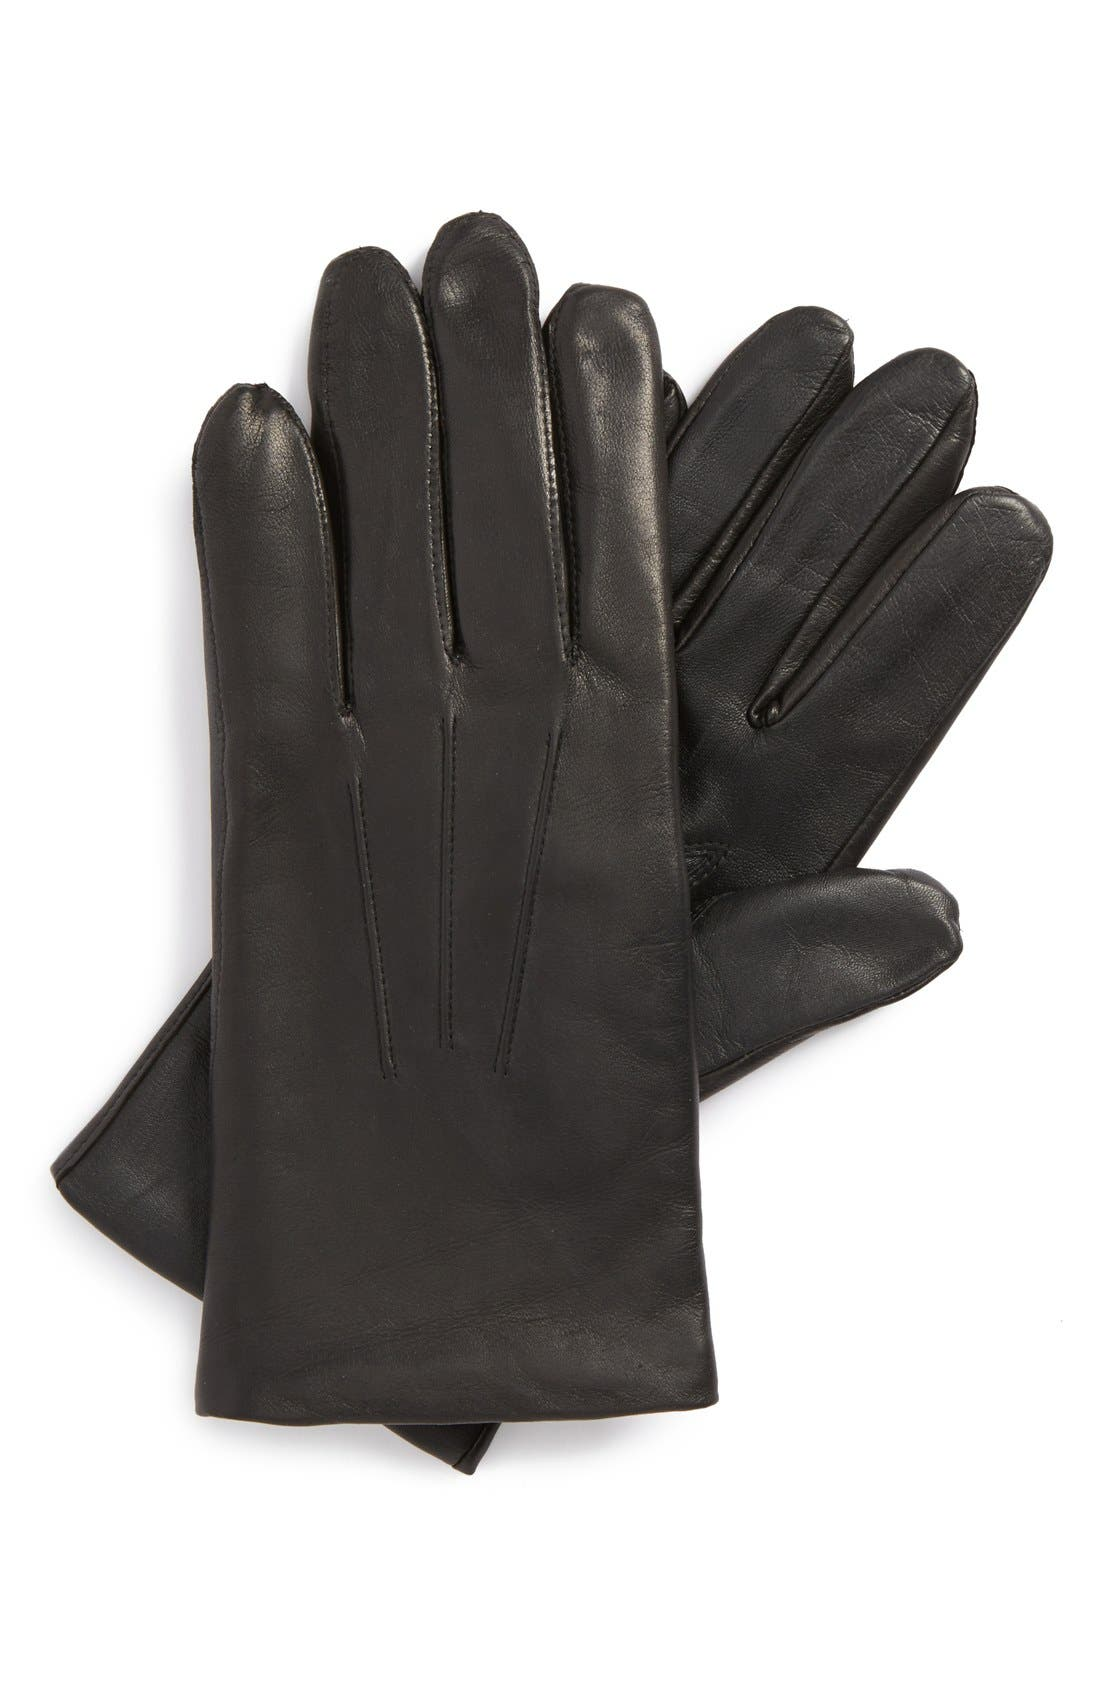 Leather Tech Gloves,                         Main,                         color, 001